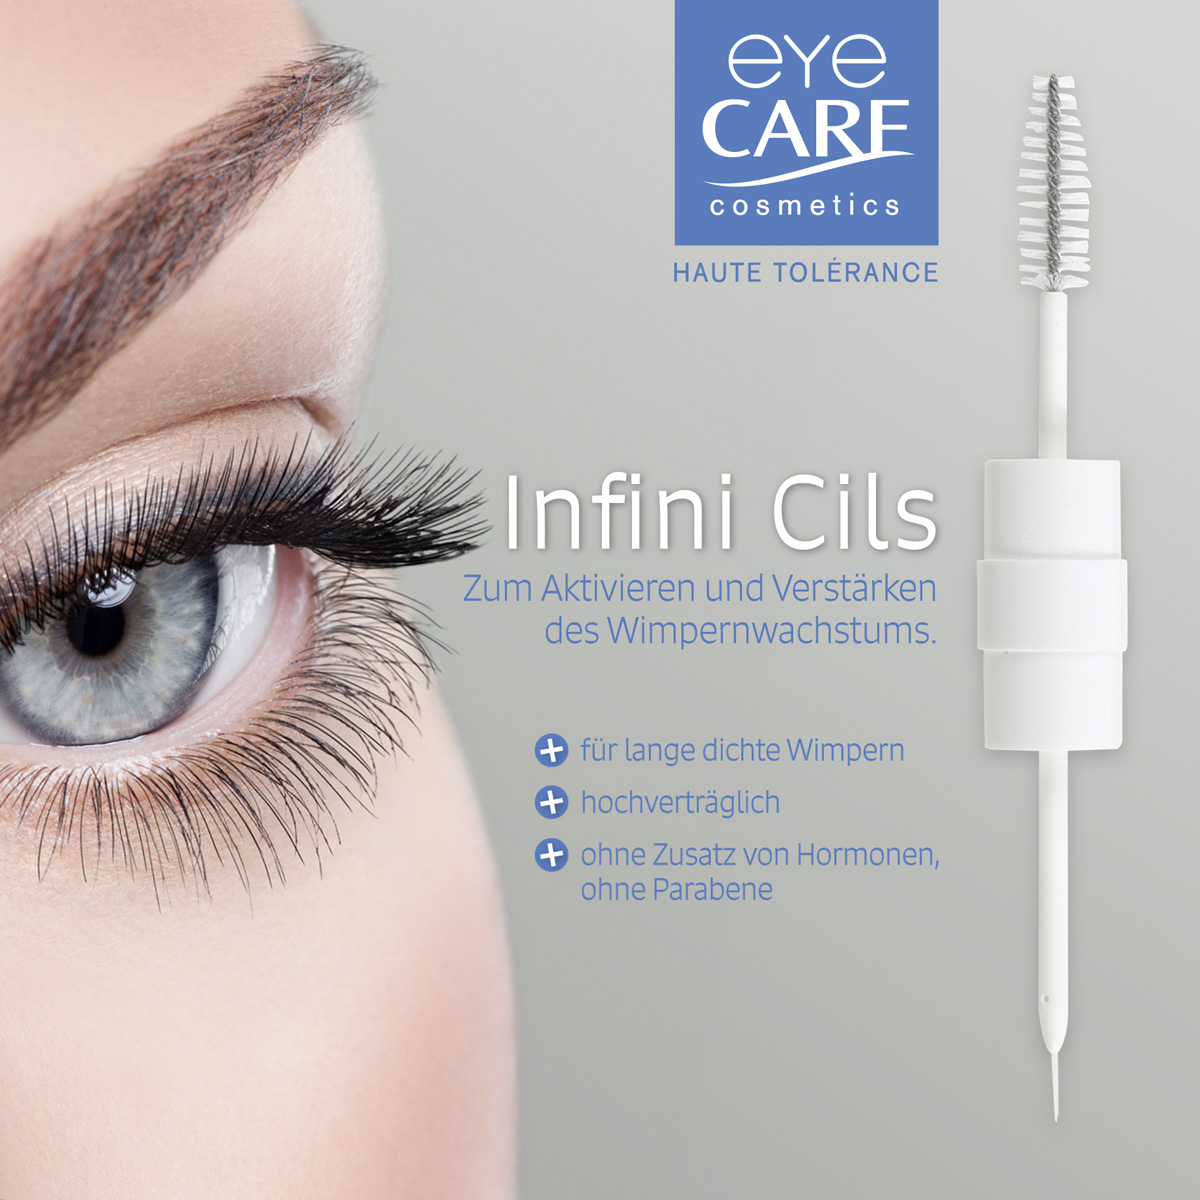 Infini Cils EYE CARE